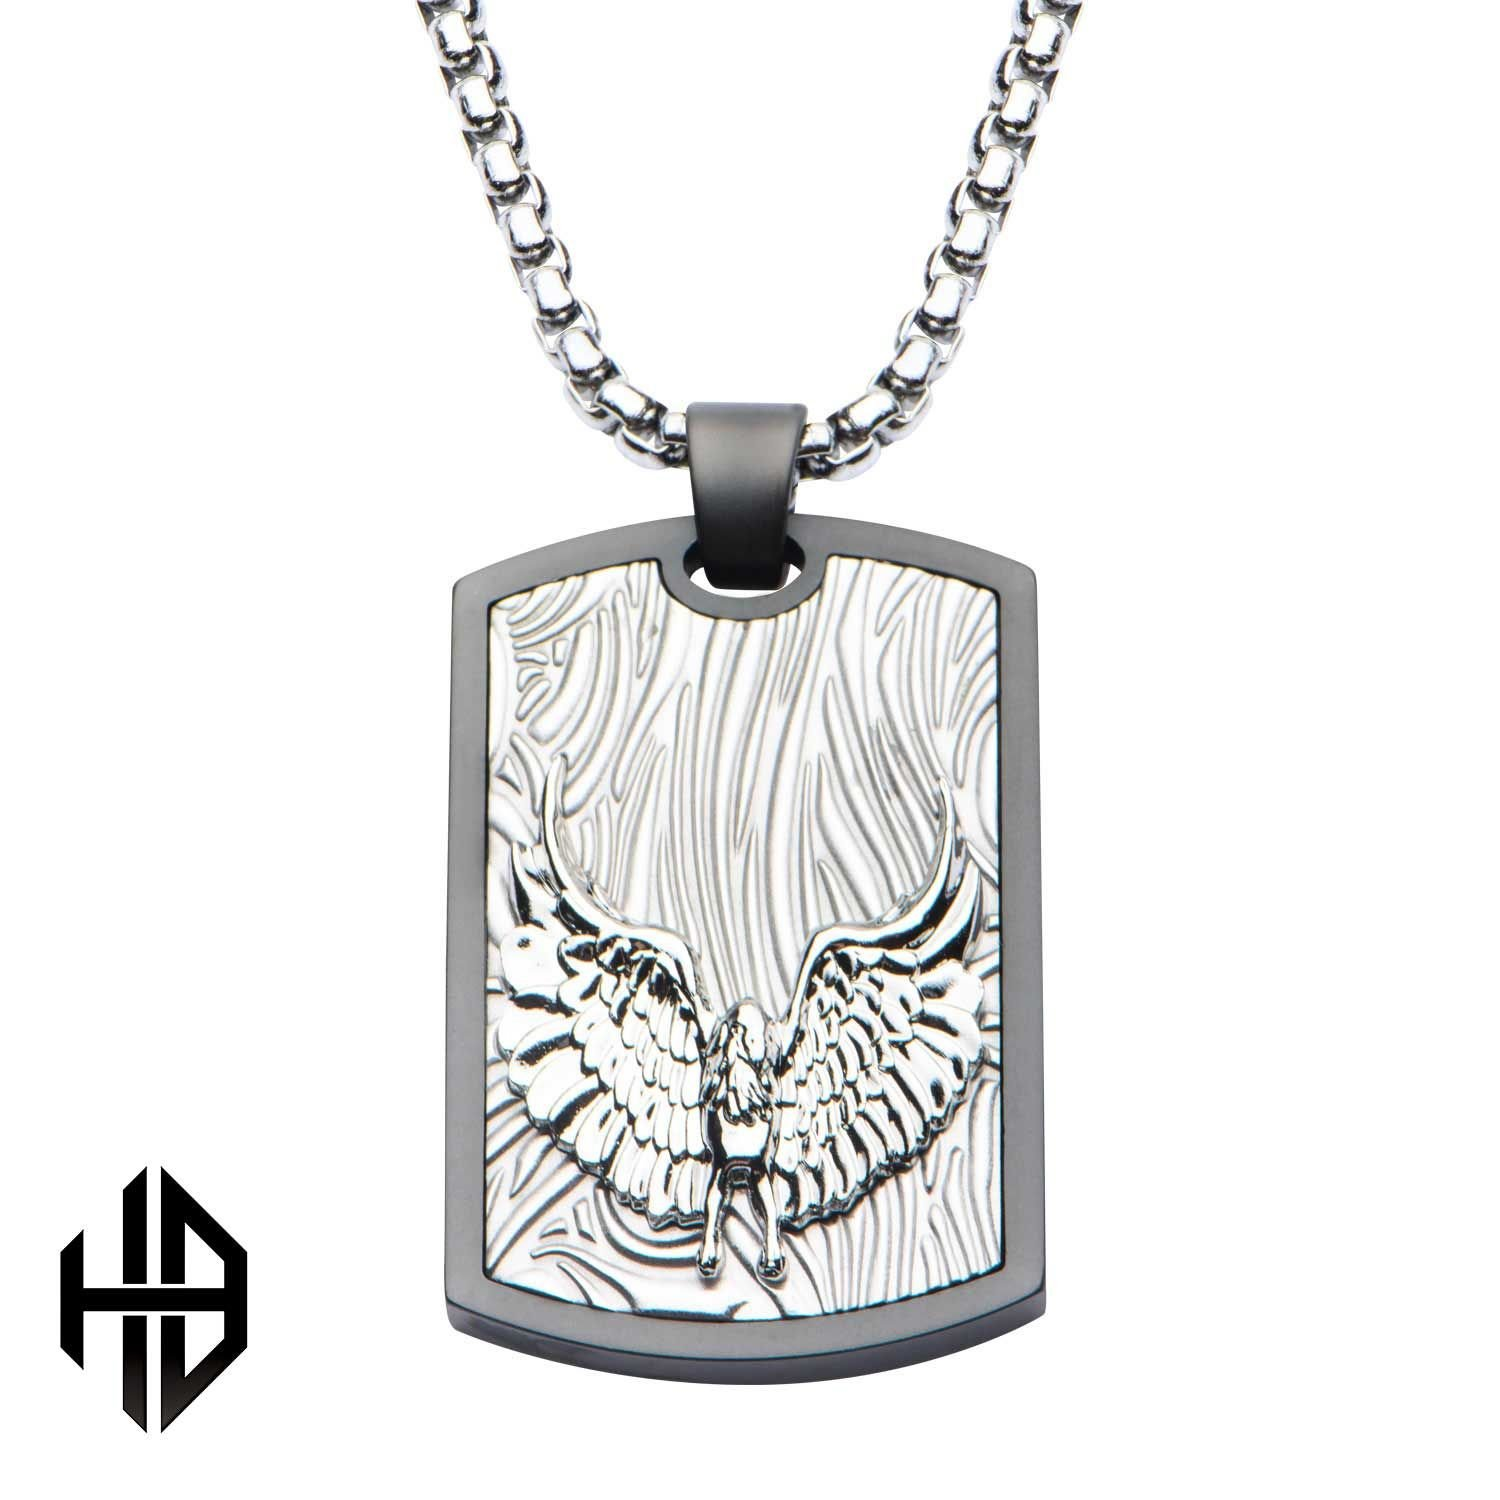 Rare Hills Hollis Bahringer Sandblasted Gun Metal Eagle Dog Tag Pendant with Chain